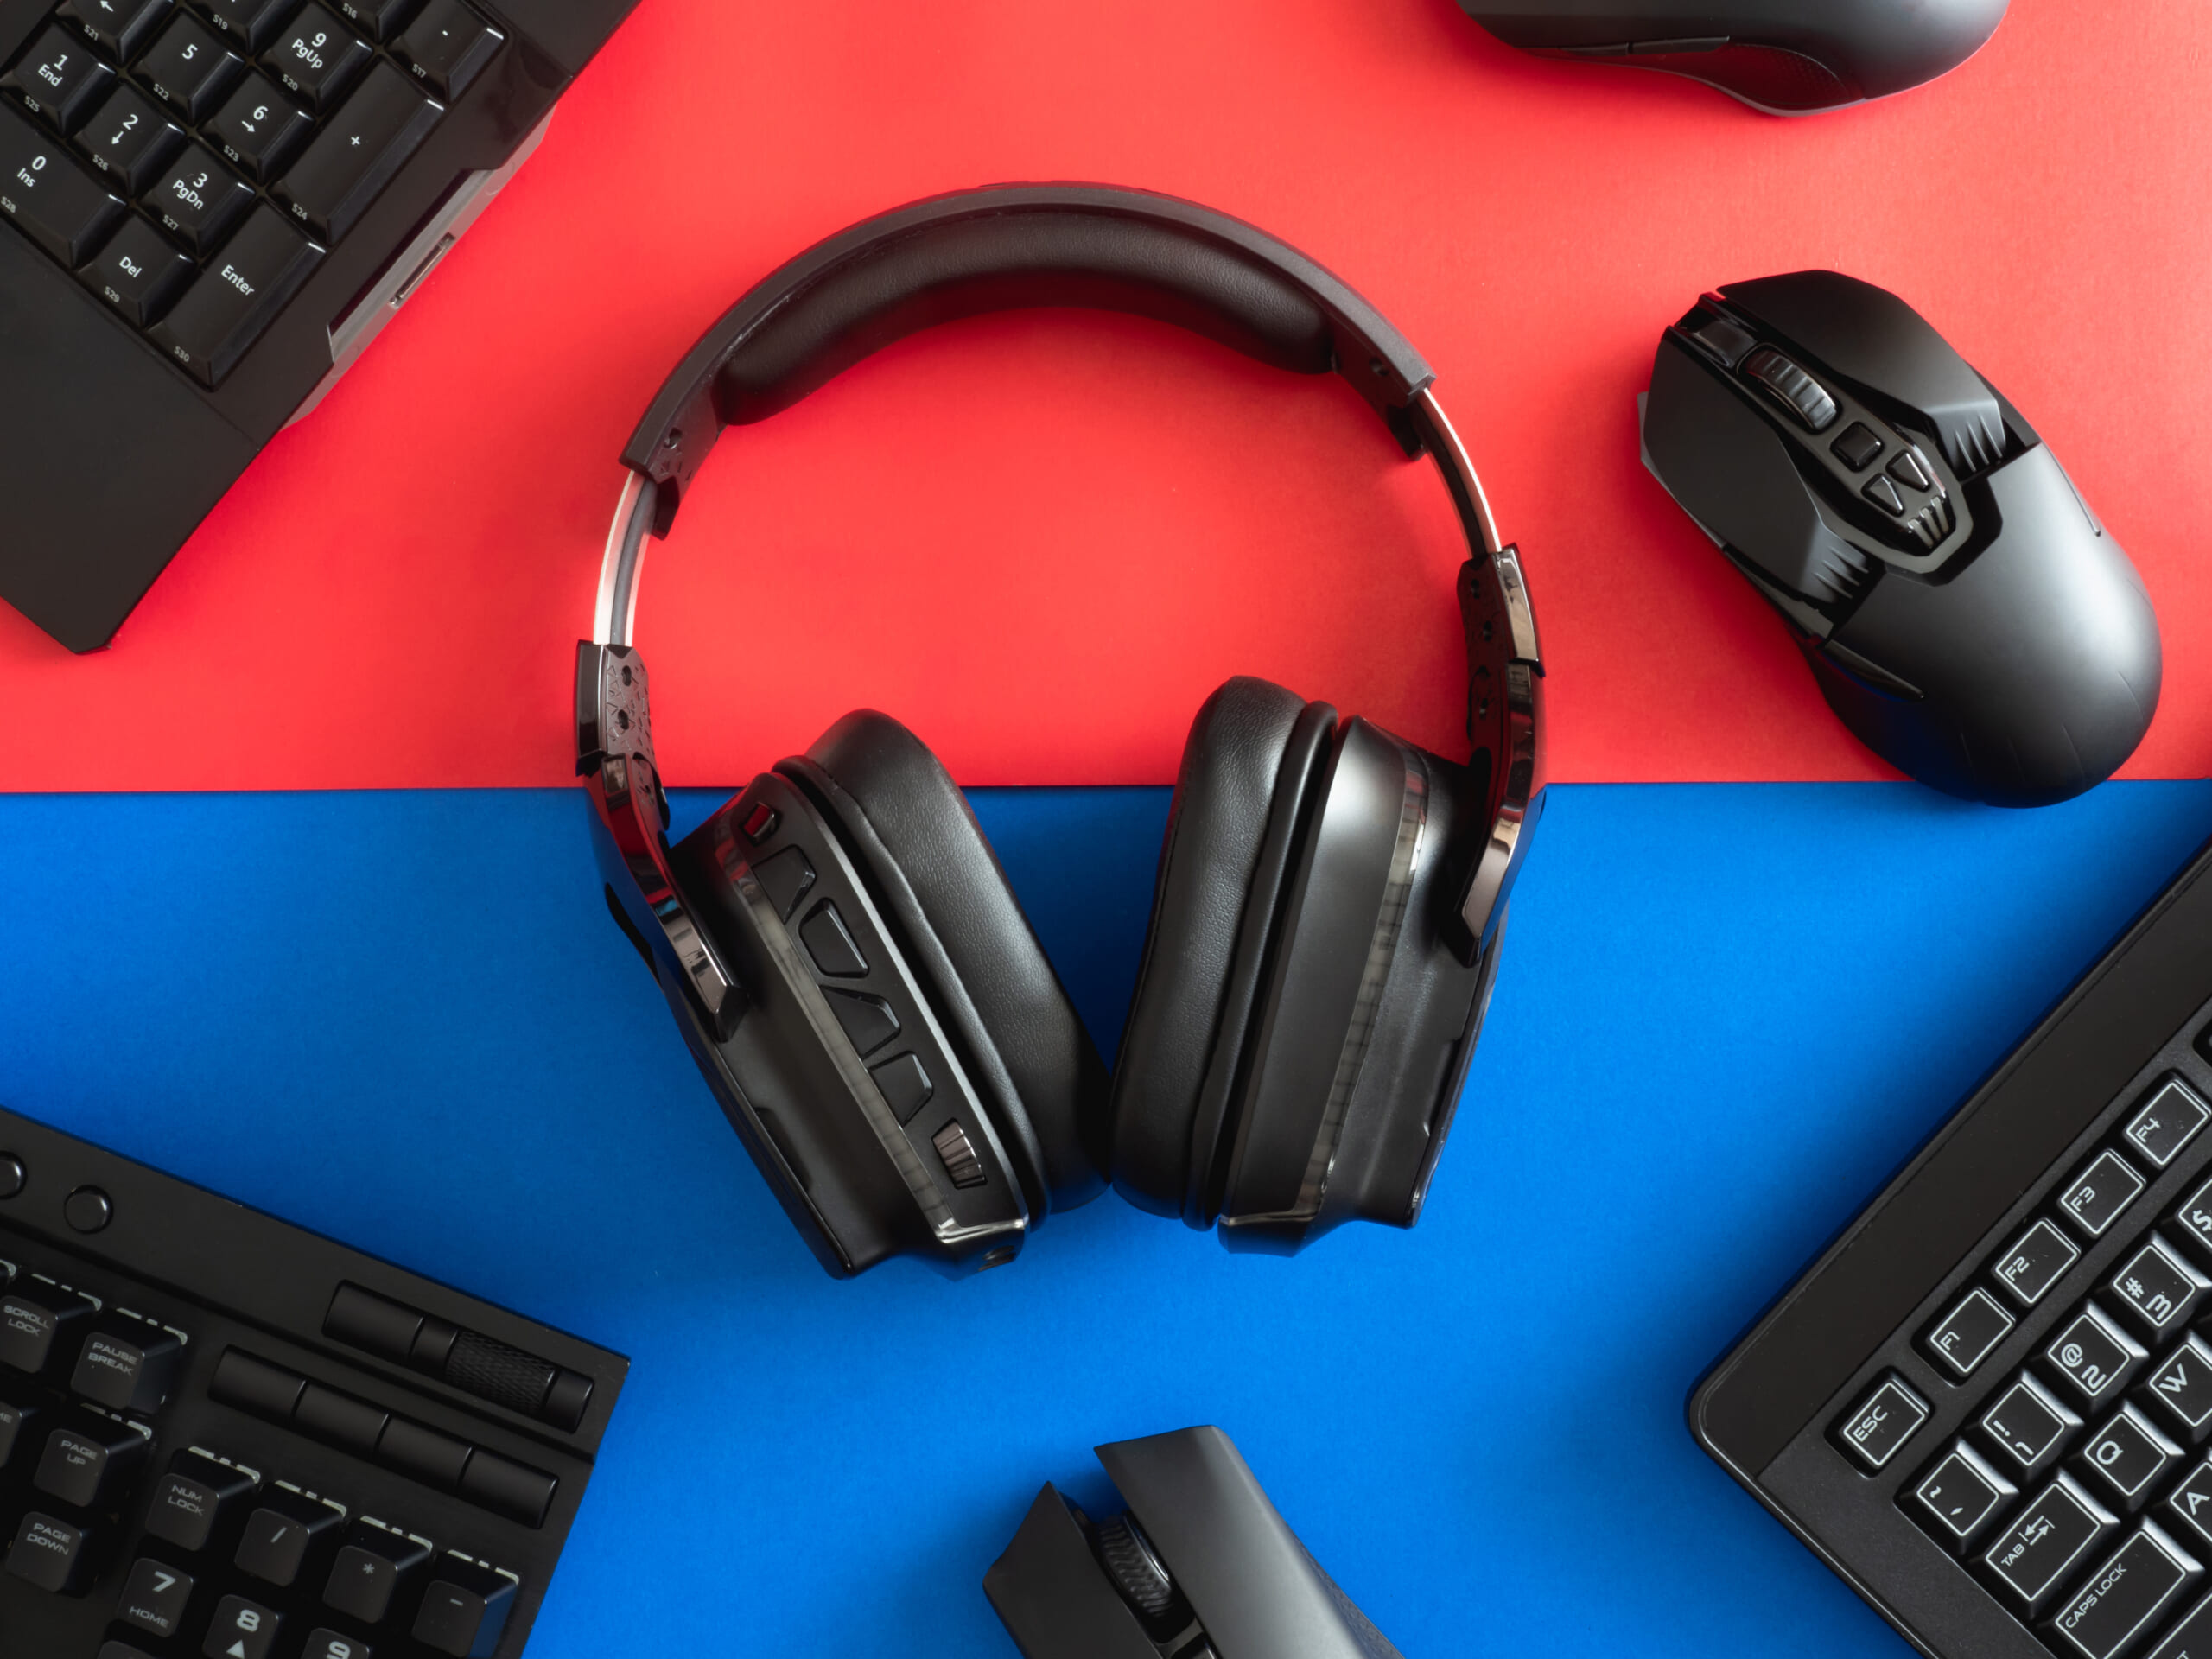 Top-view-a-gaming-gear-mouse-keyboard-headphone-and-mouse-pad-on-table-background.jpg